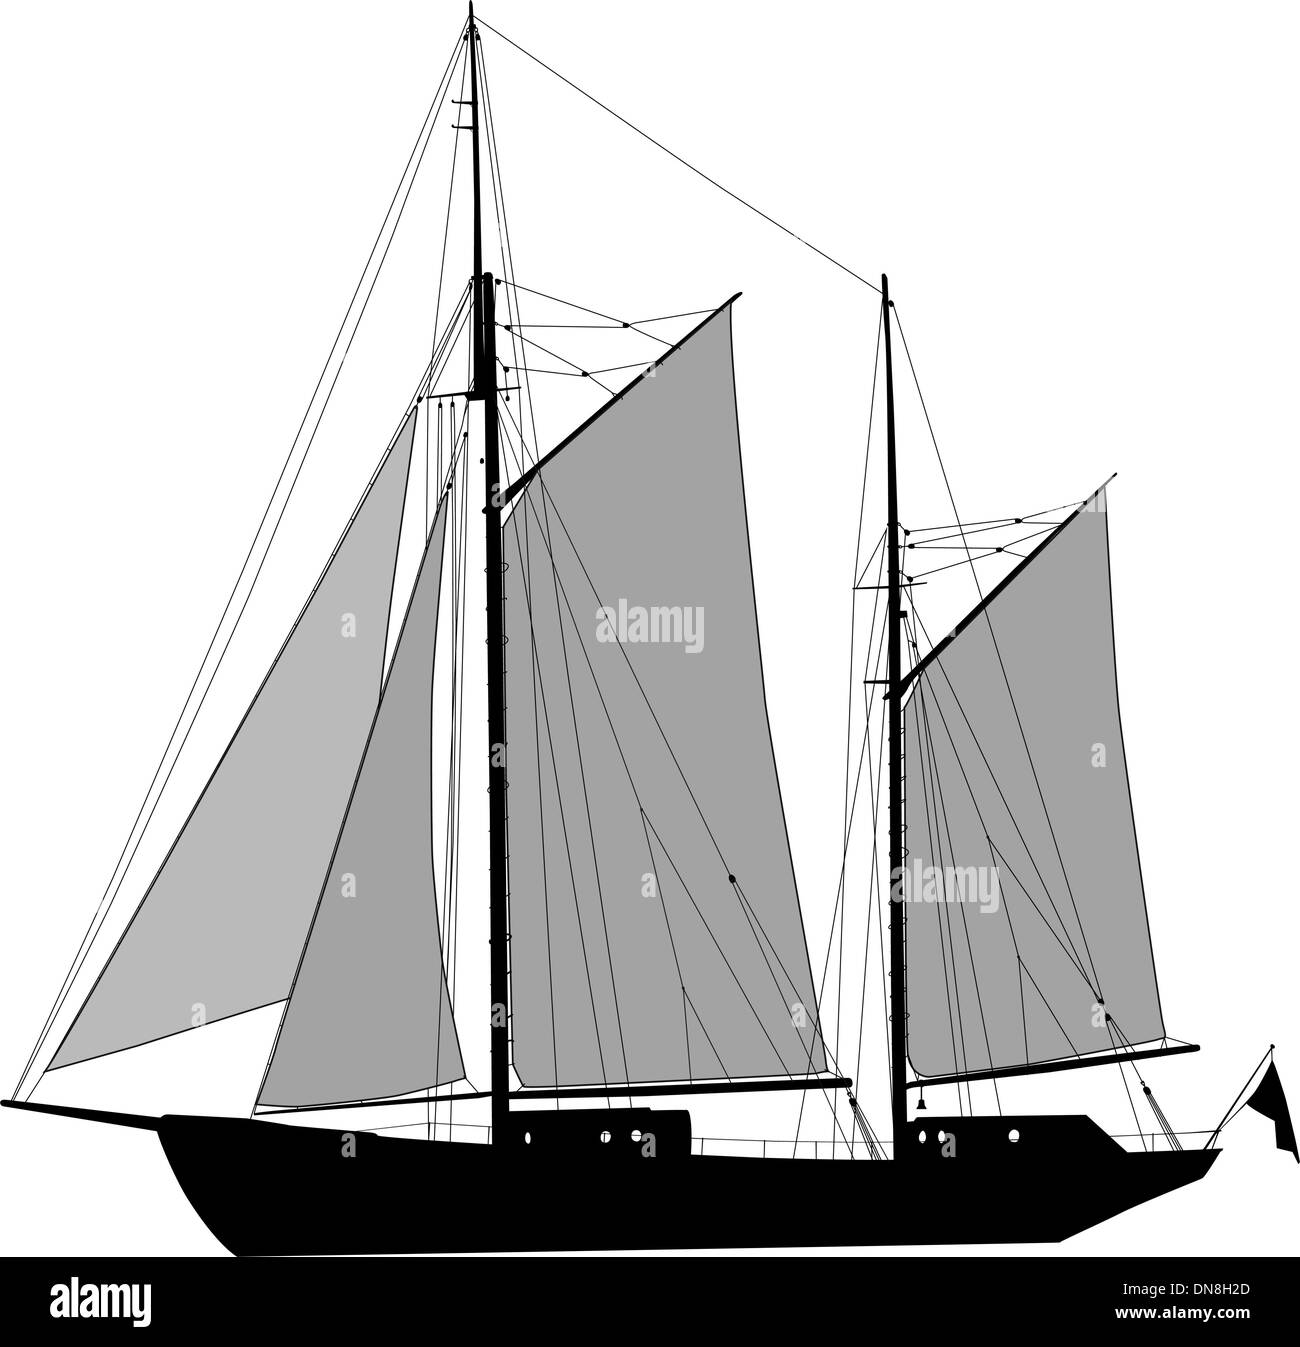 Two masted ketch - Stock Image